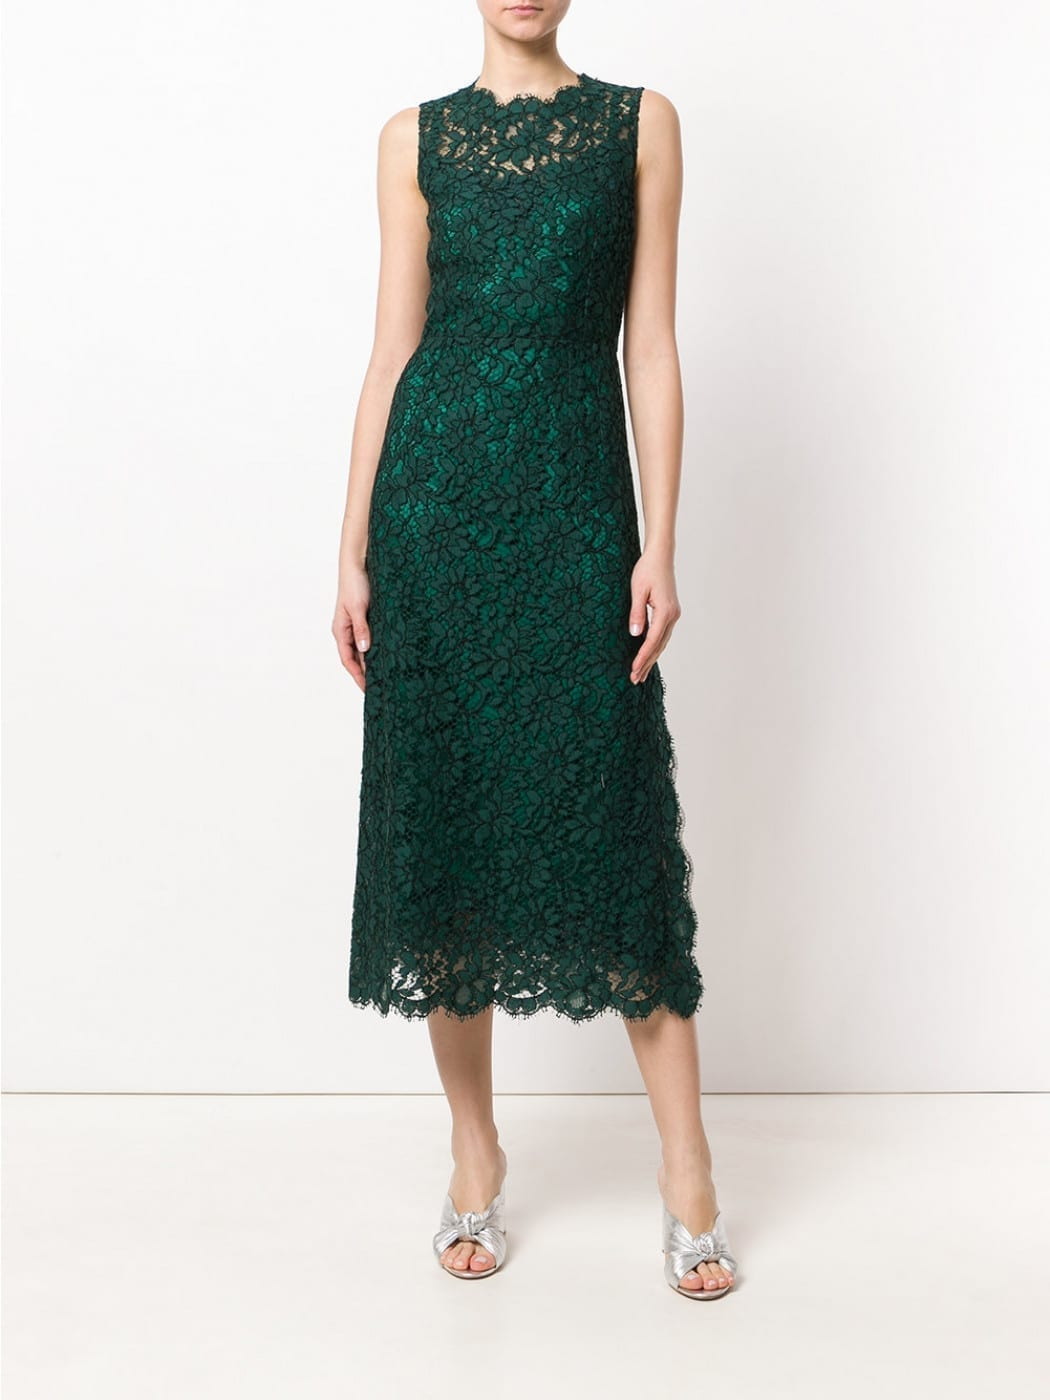 DOLCE & GABBANA Blend Cotton Lace Green Dress